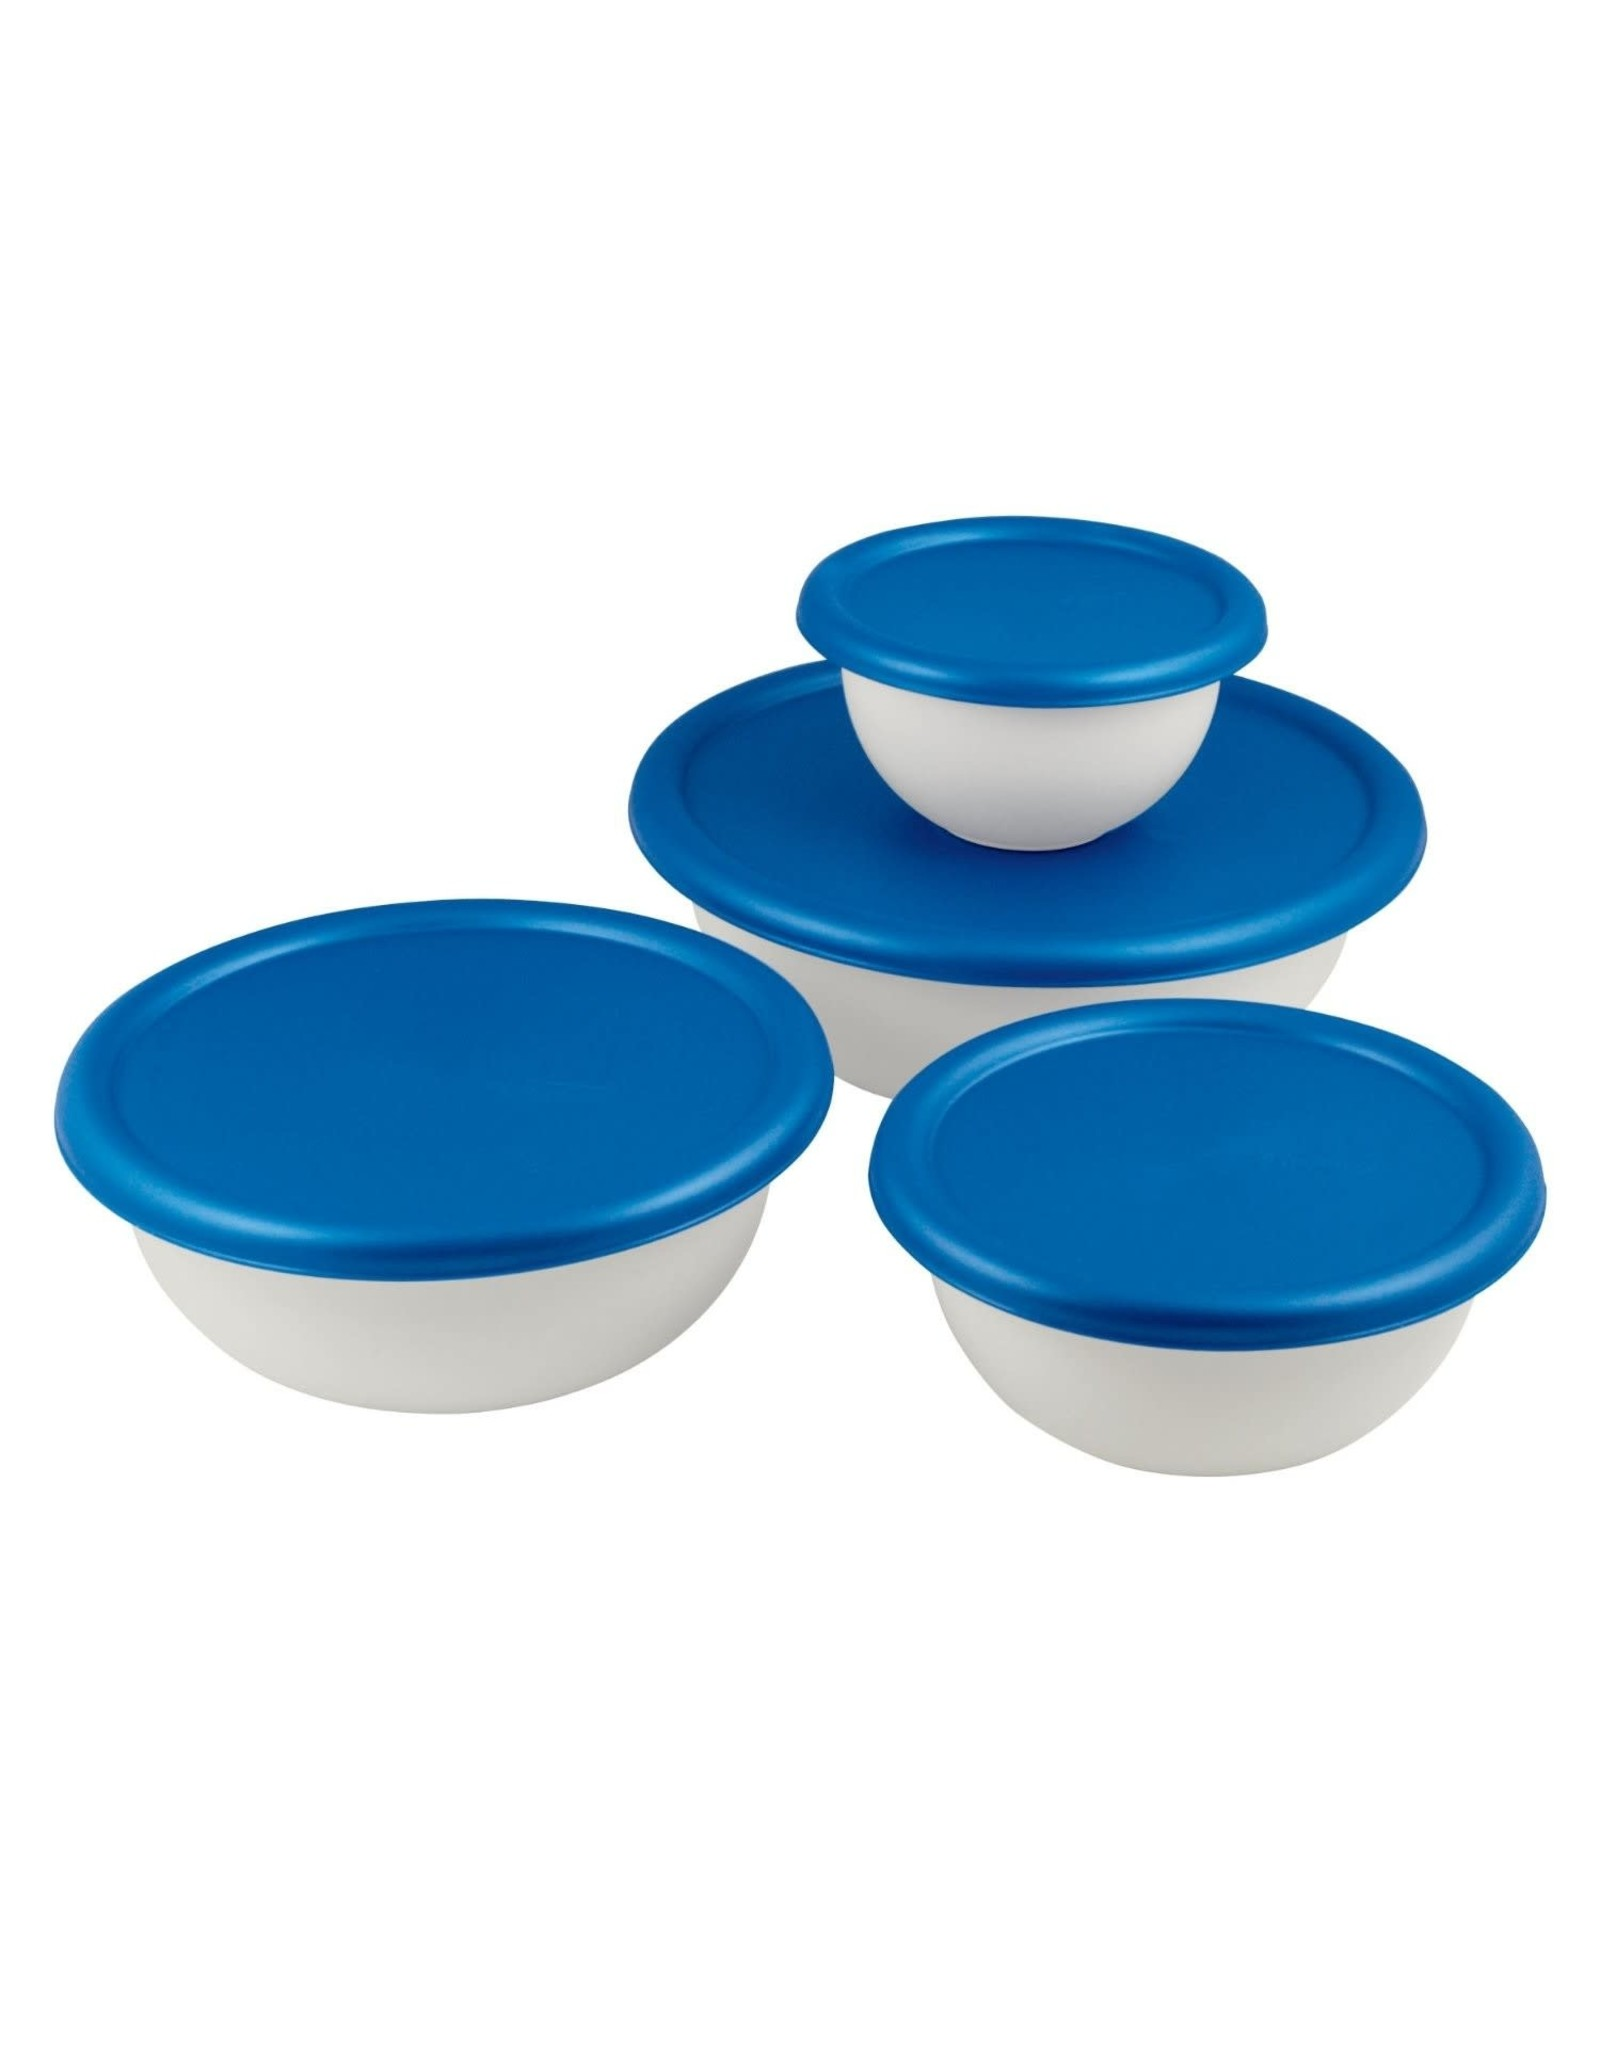 BOWL SET OF 4 w/COVERS-WHT/BLUE TOP